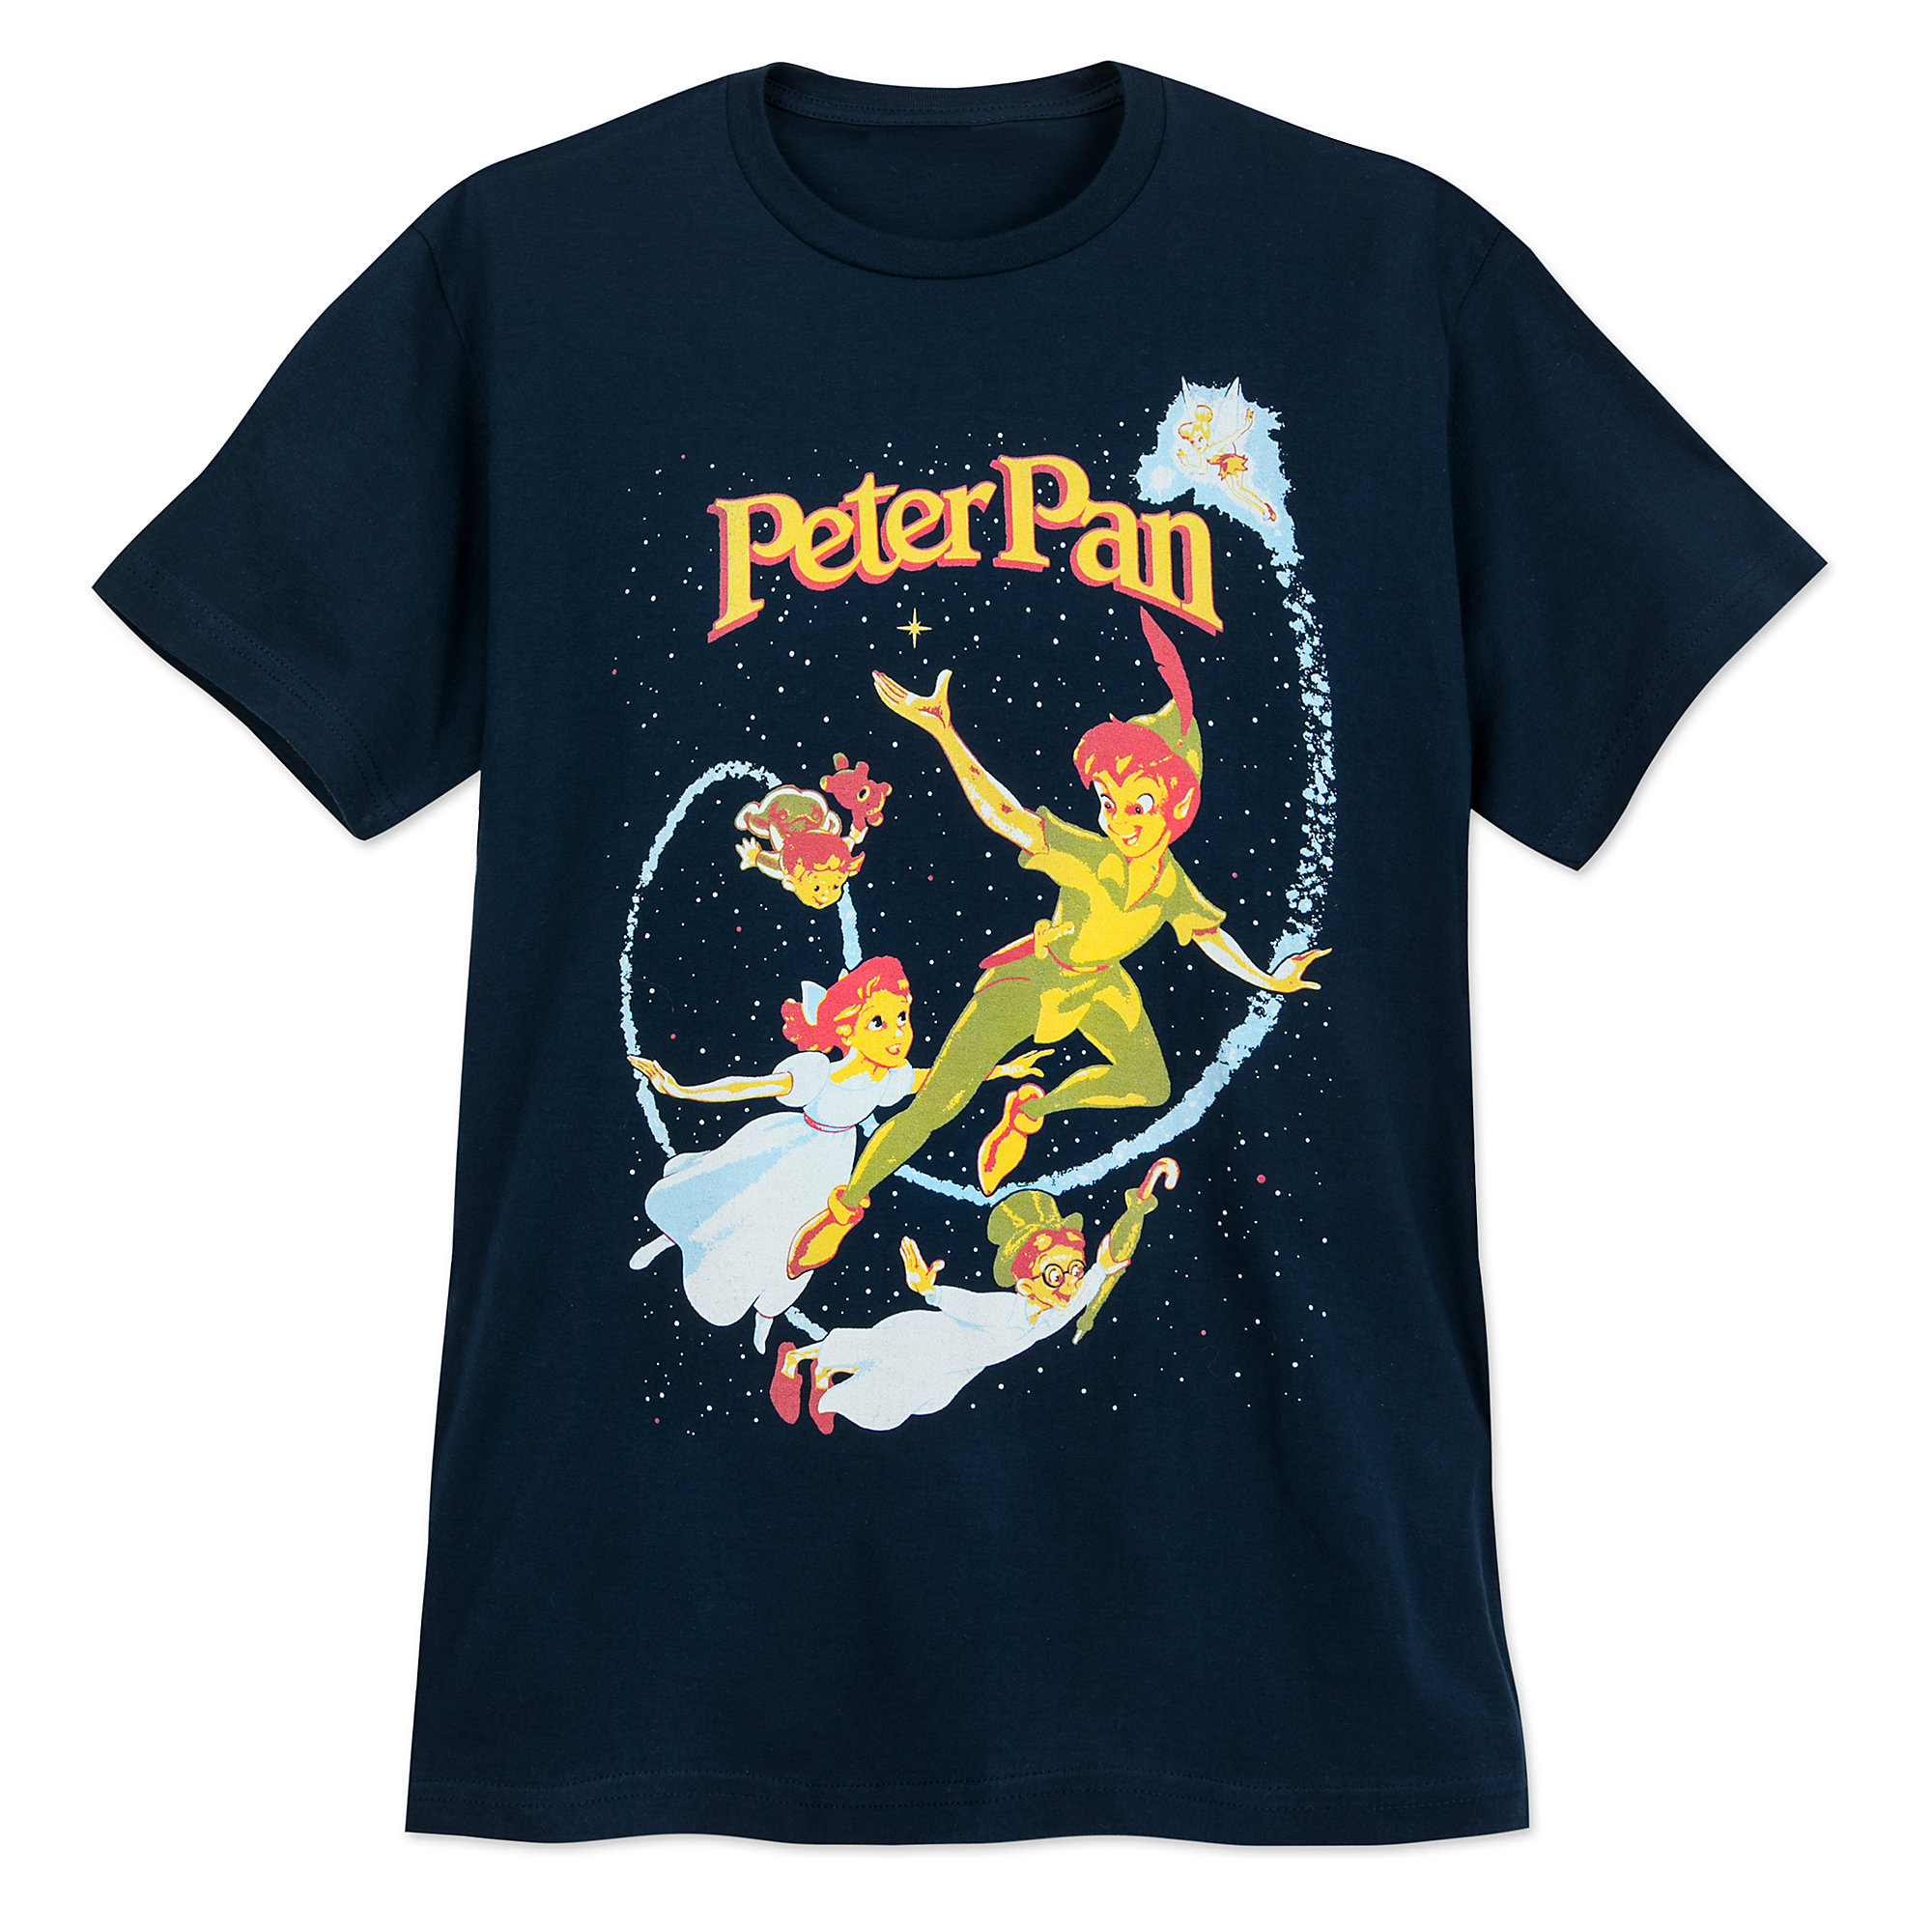 Peter Pan T-Shirt for Men